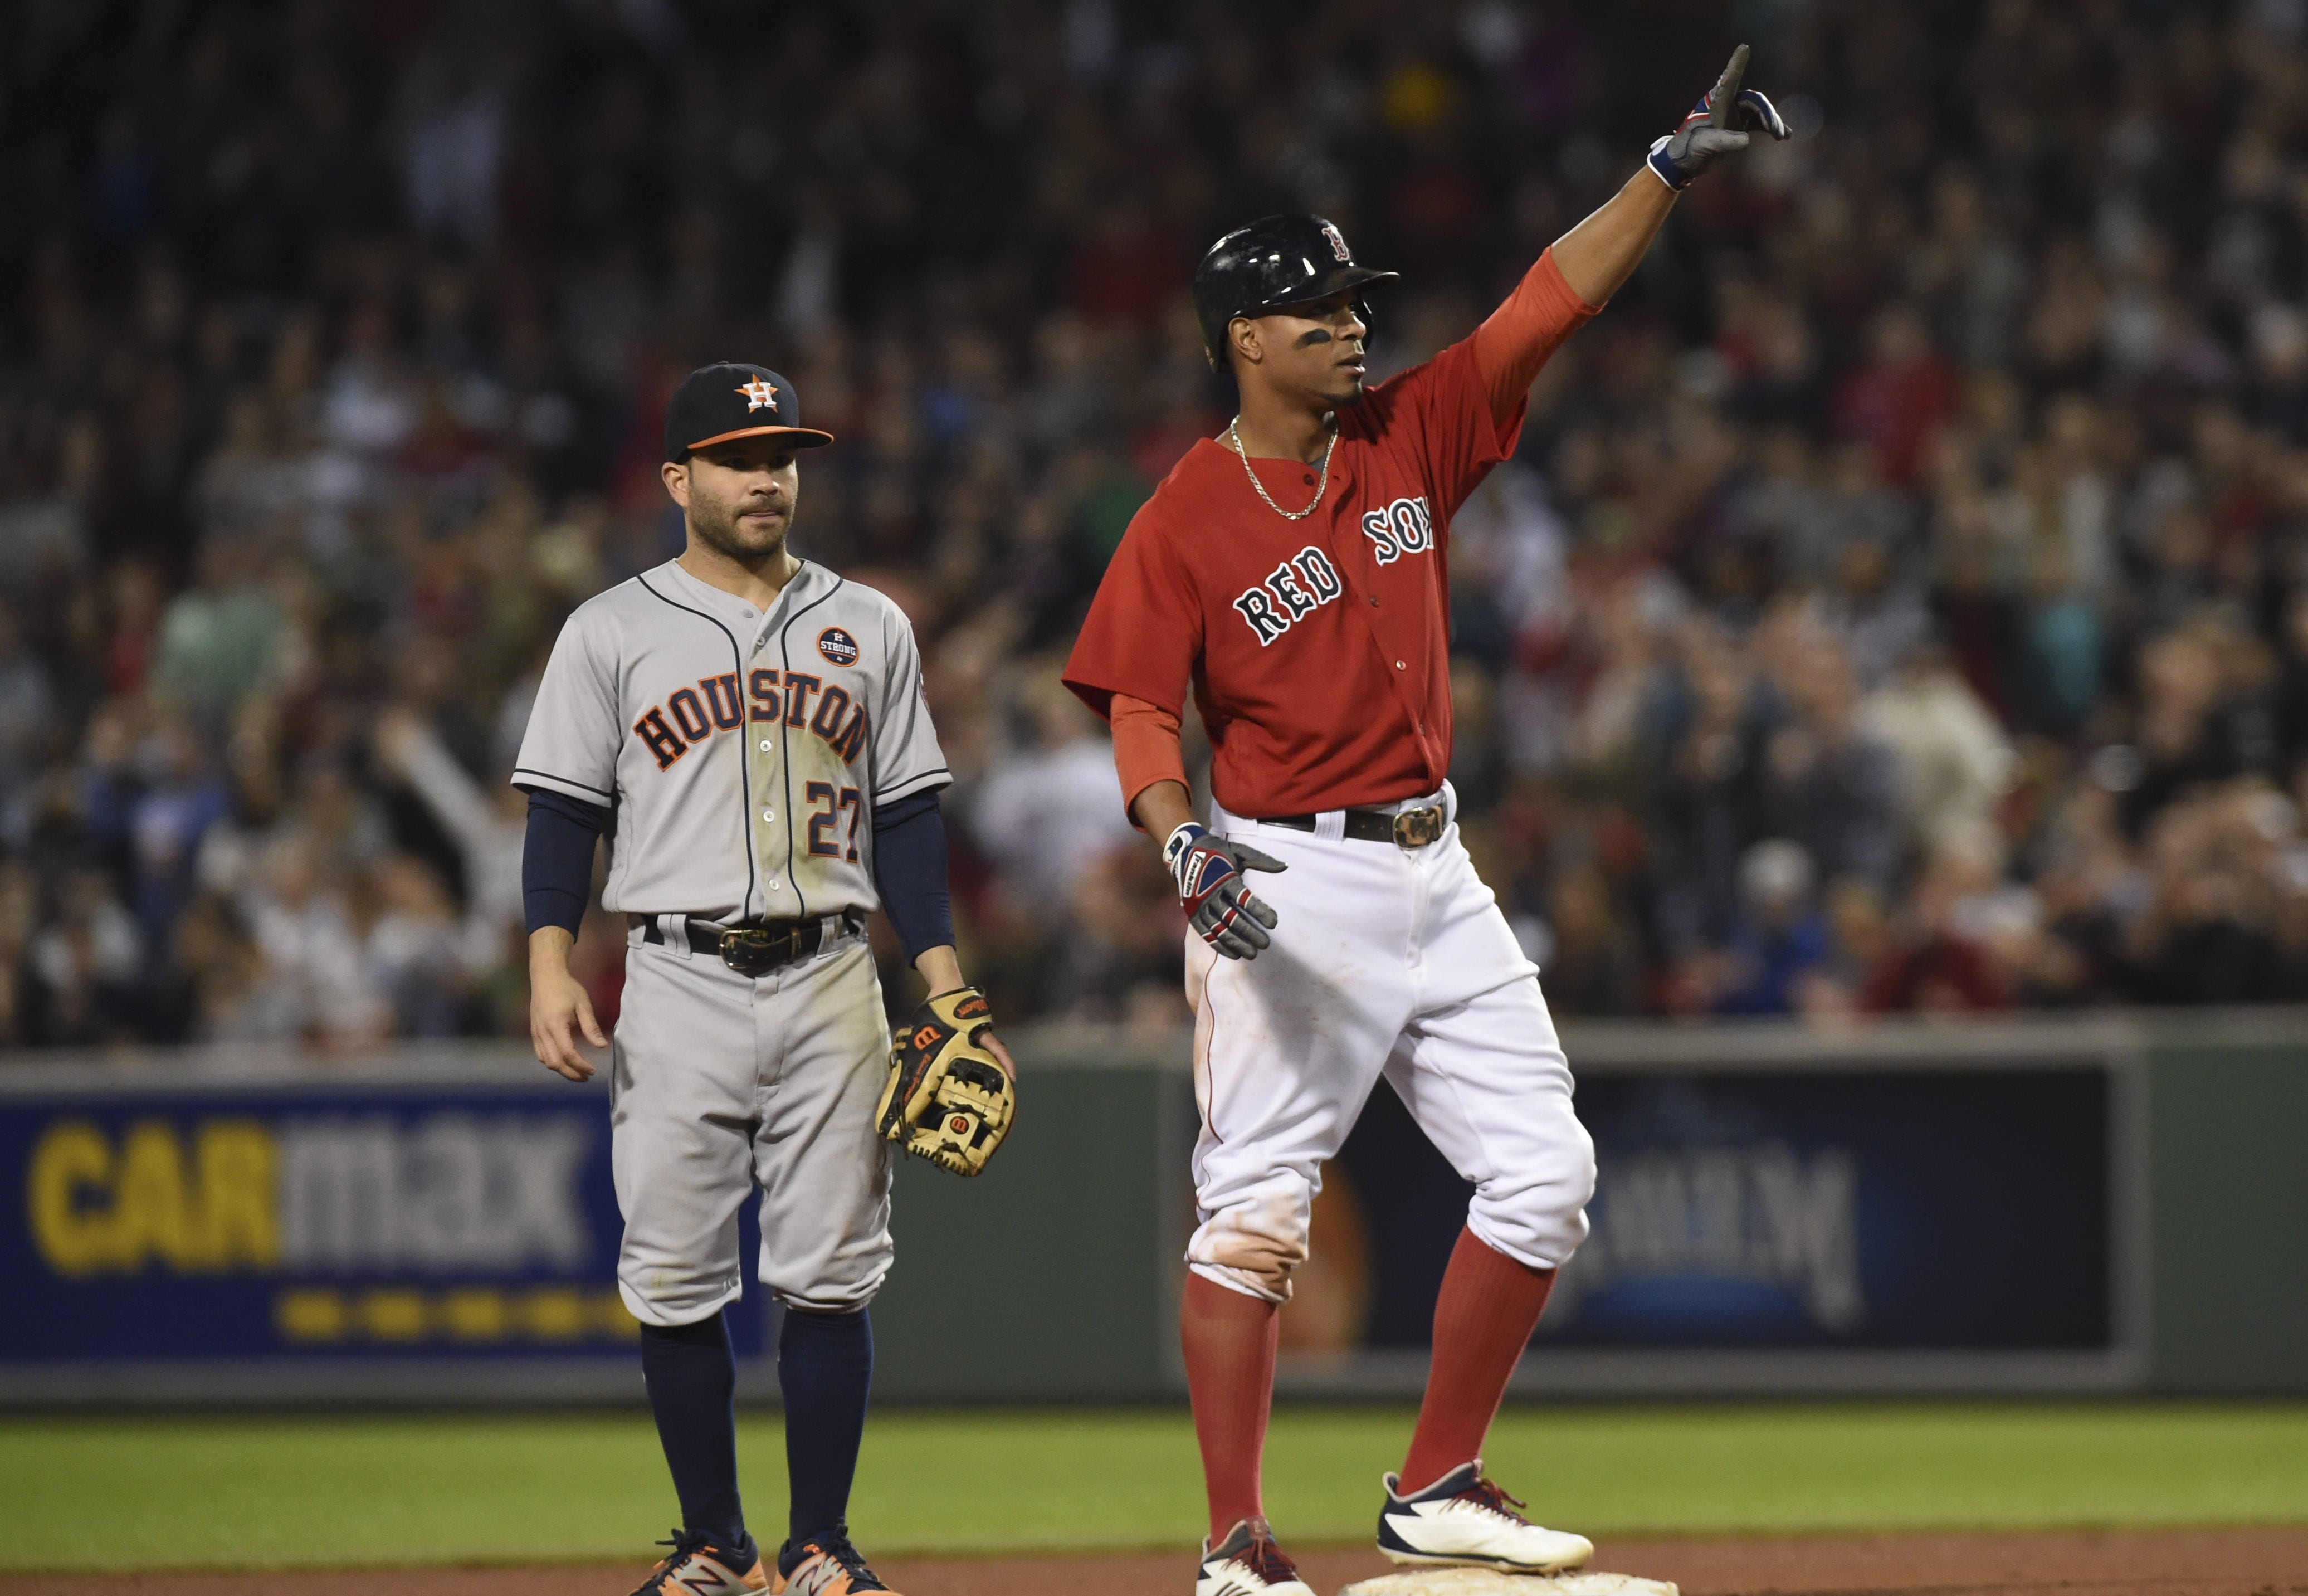 Red Sox vs. Astros MLB Playoffs: ALDS Series Odds and Prediction | Sports Interaction